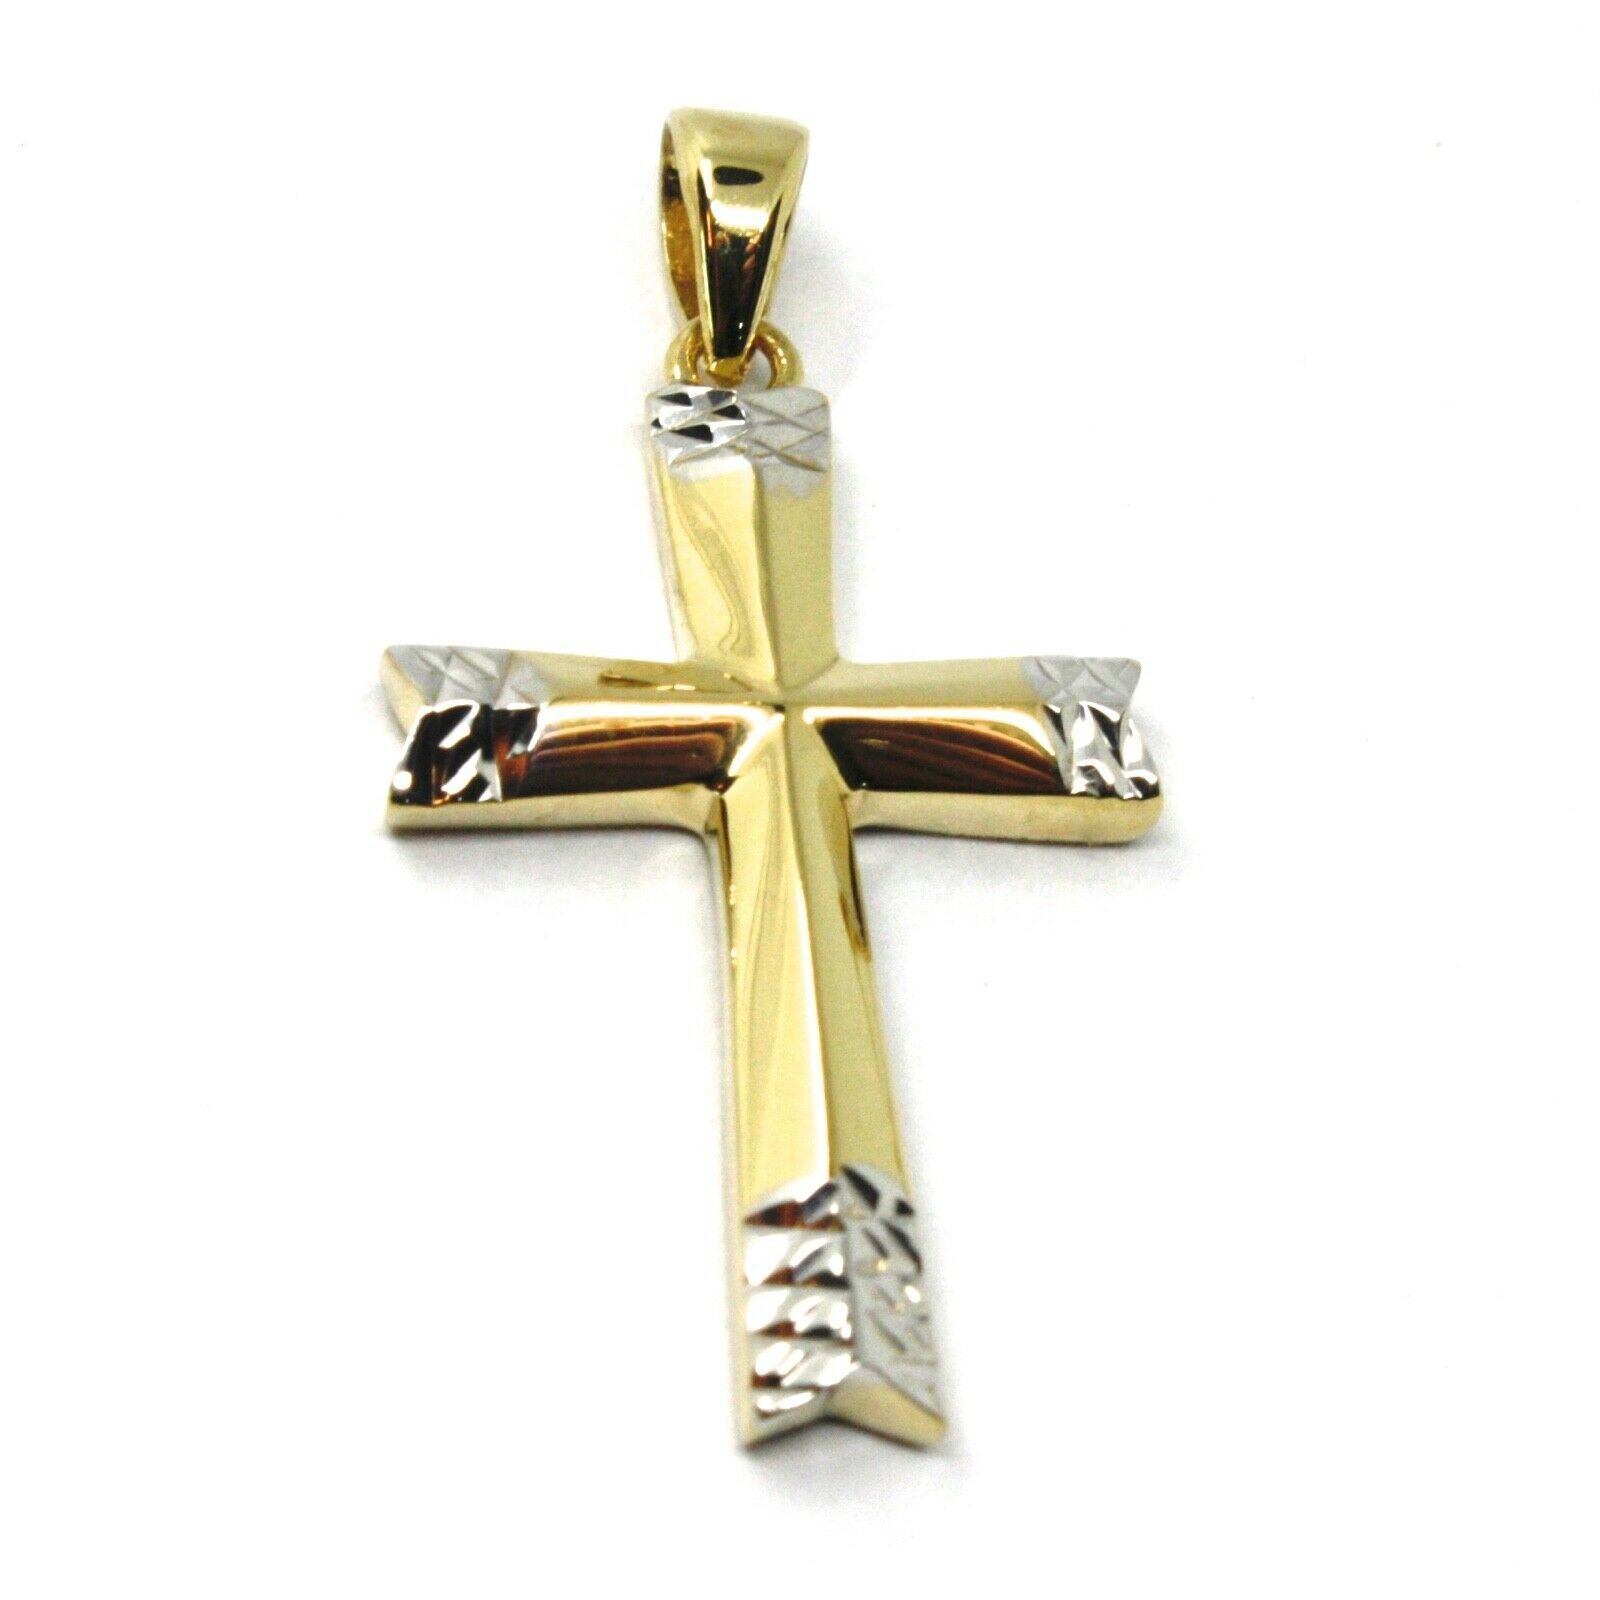 18K YELLOW WHITE GOLD CROSS, BICOLOR SMOOTH, HAMMERED, 2.4cm 0.94 inches